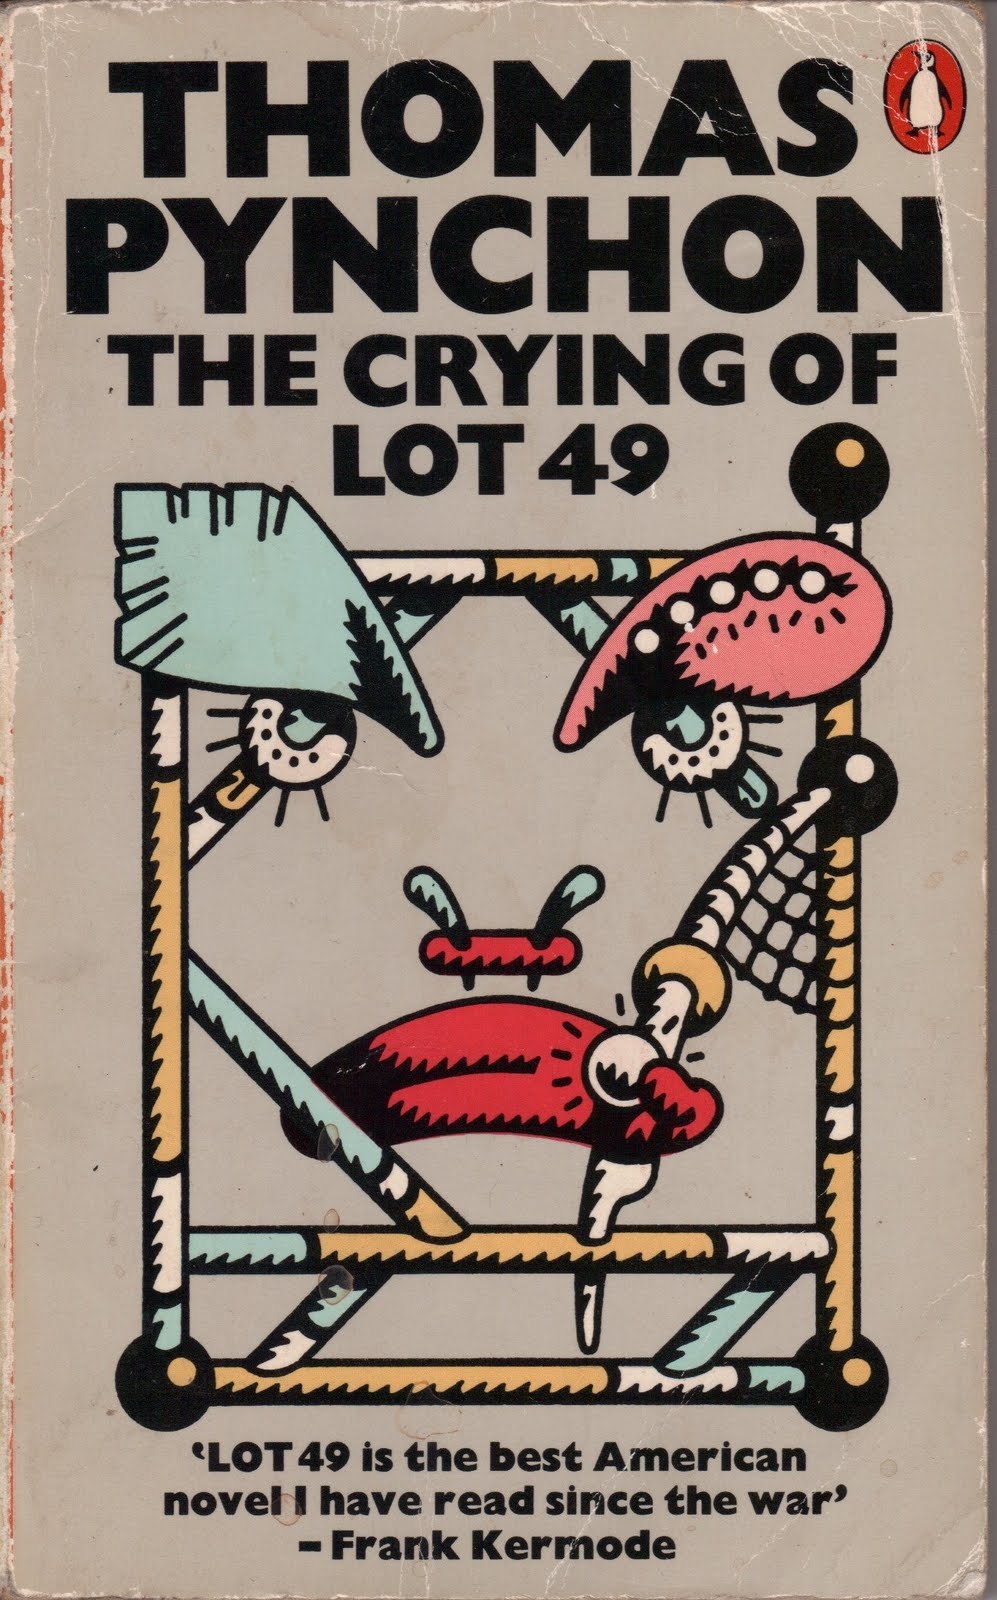 thomas pynchons the crying lot 49 essay Read this full essay on character analysis of oedipa in the crying of lot 49   1565 words - 6 pages in thomas pynchon's novel the crying of lot 49, we meet .